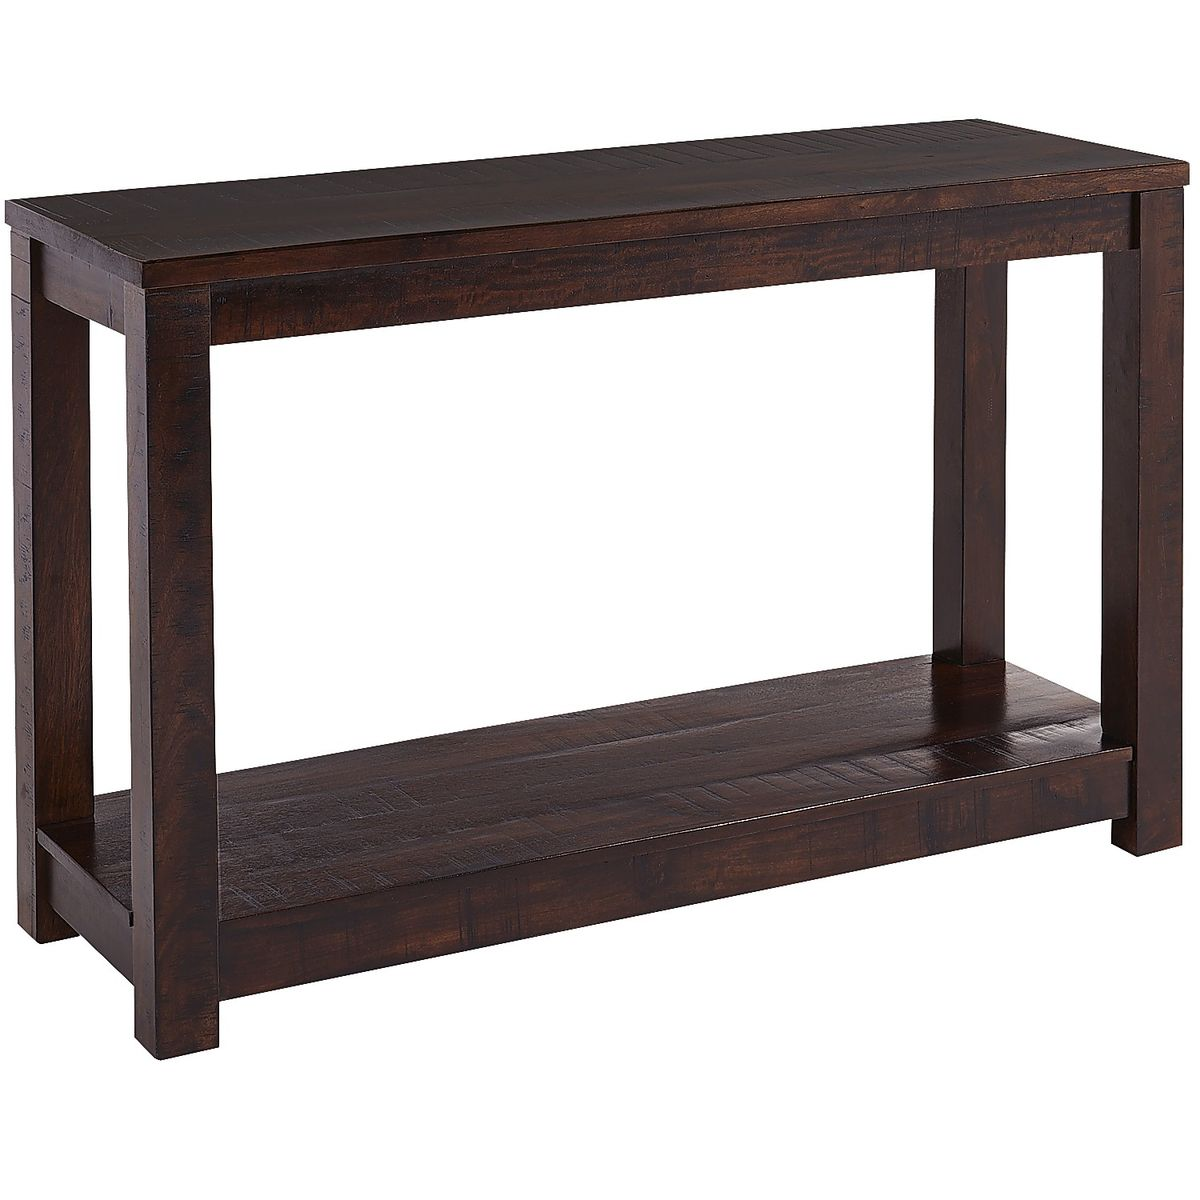 Living Room Side Tables For Sale Parsons Tobacco Brown Console Table Costa Rican Furniture